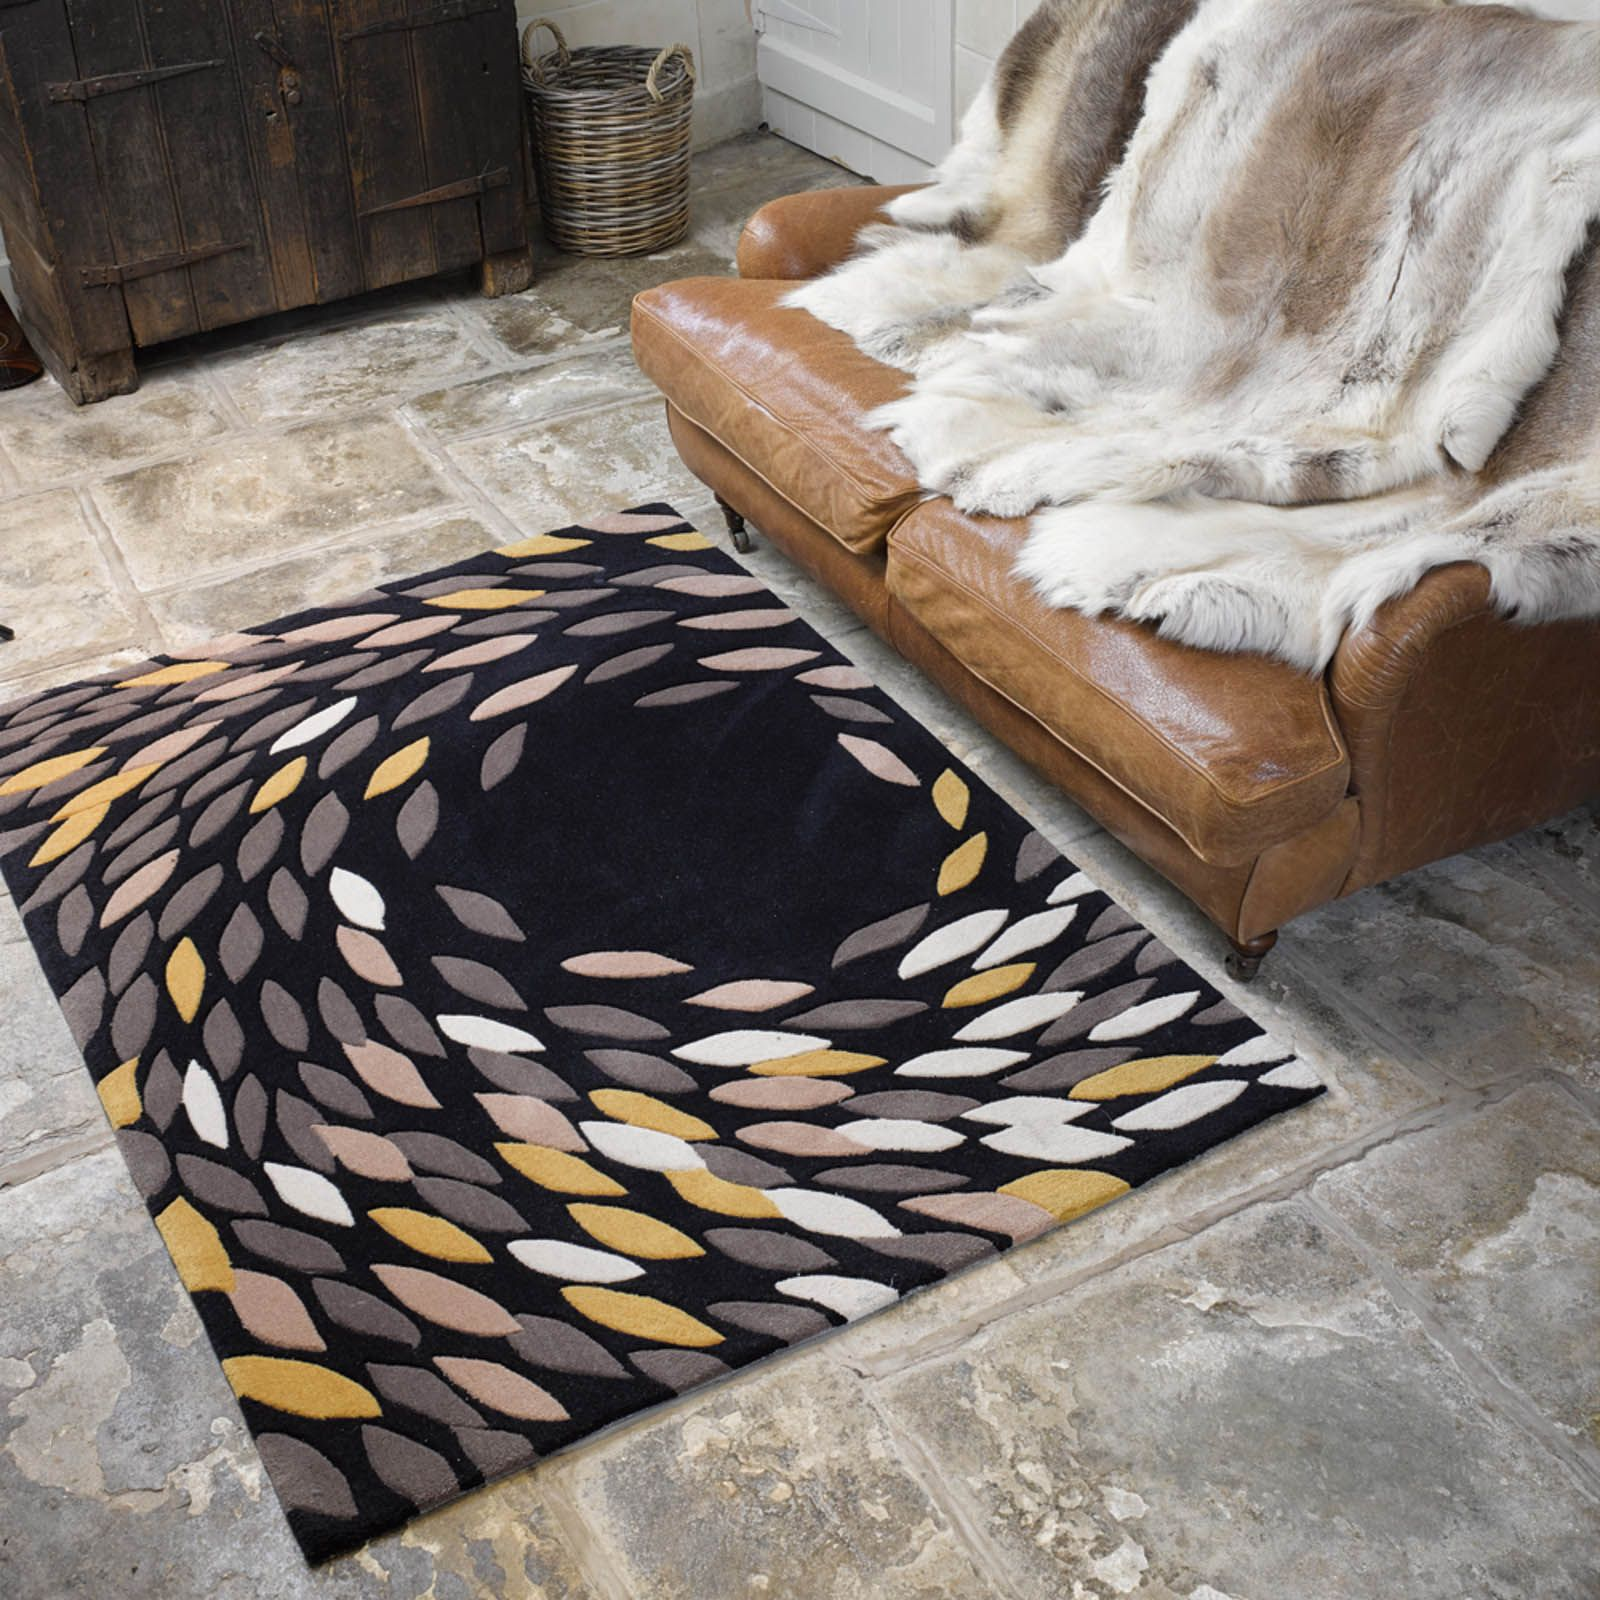 The Carnival Swirl Rug Features A Black With Circular Of Red Cream And